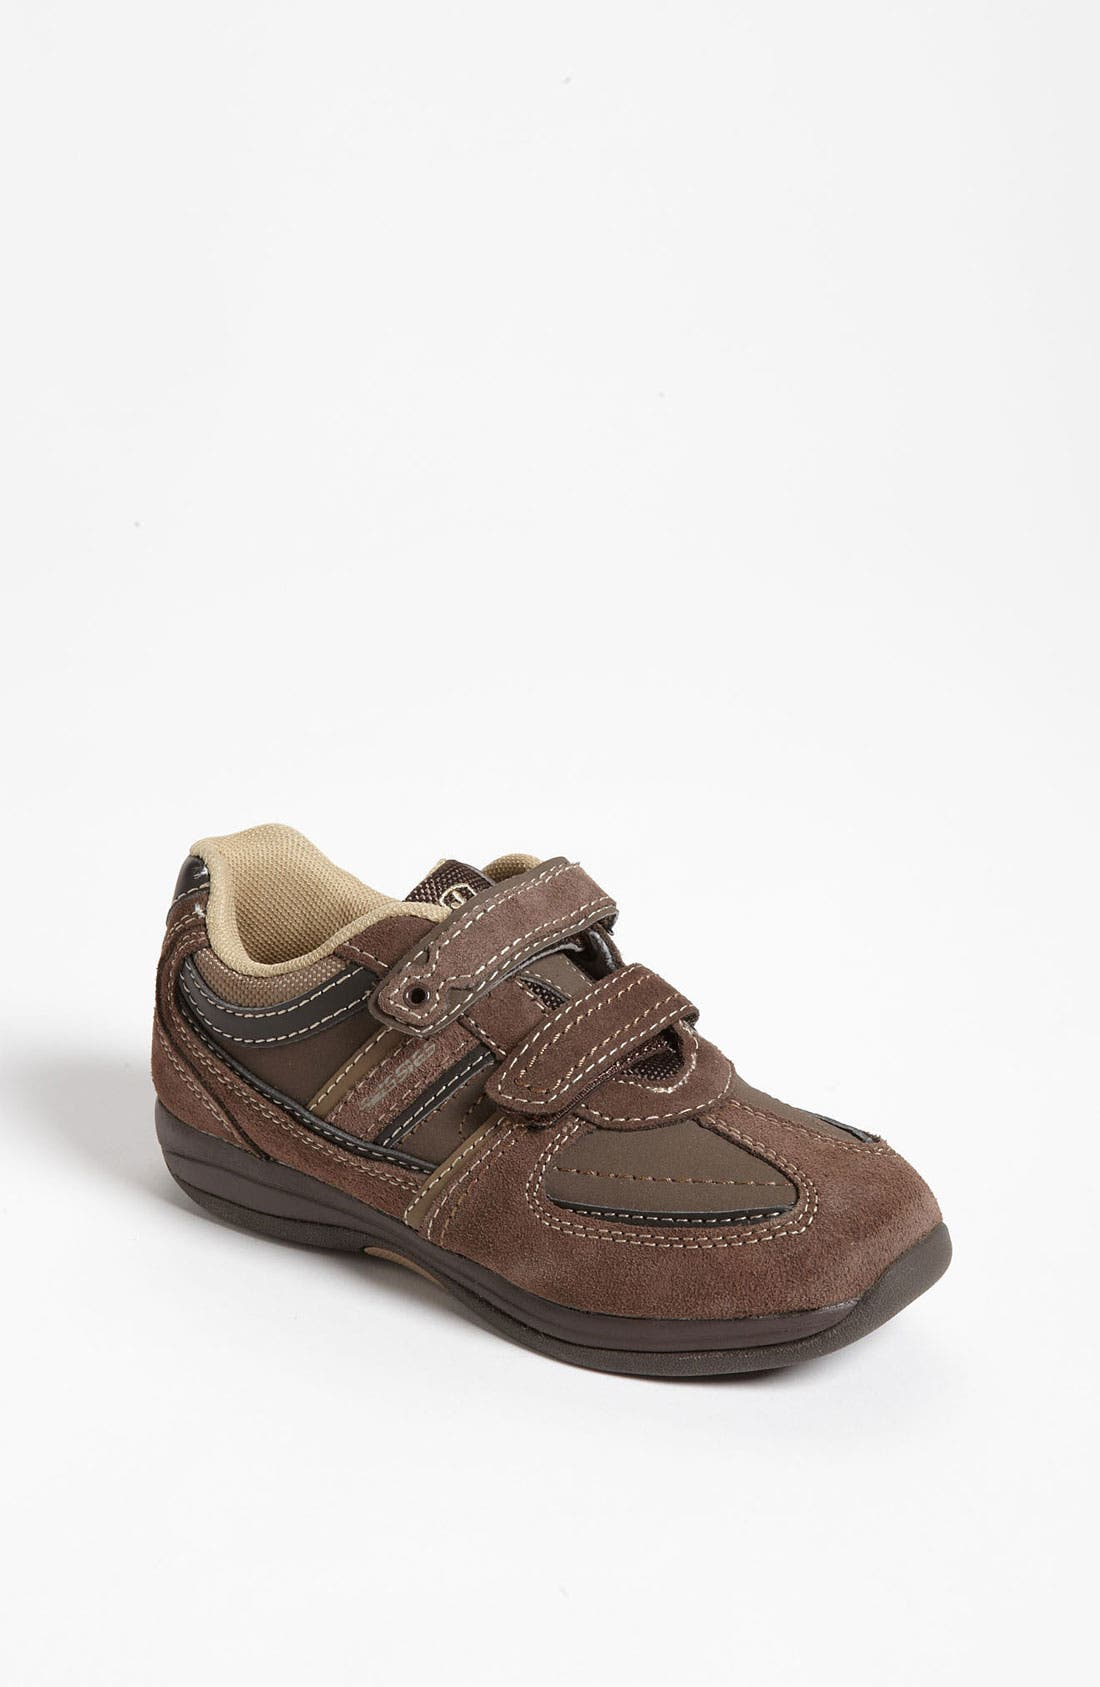 Main Image - Swissies 'Derek' Sneaker (Toddler, Little Kid & Big Kid)